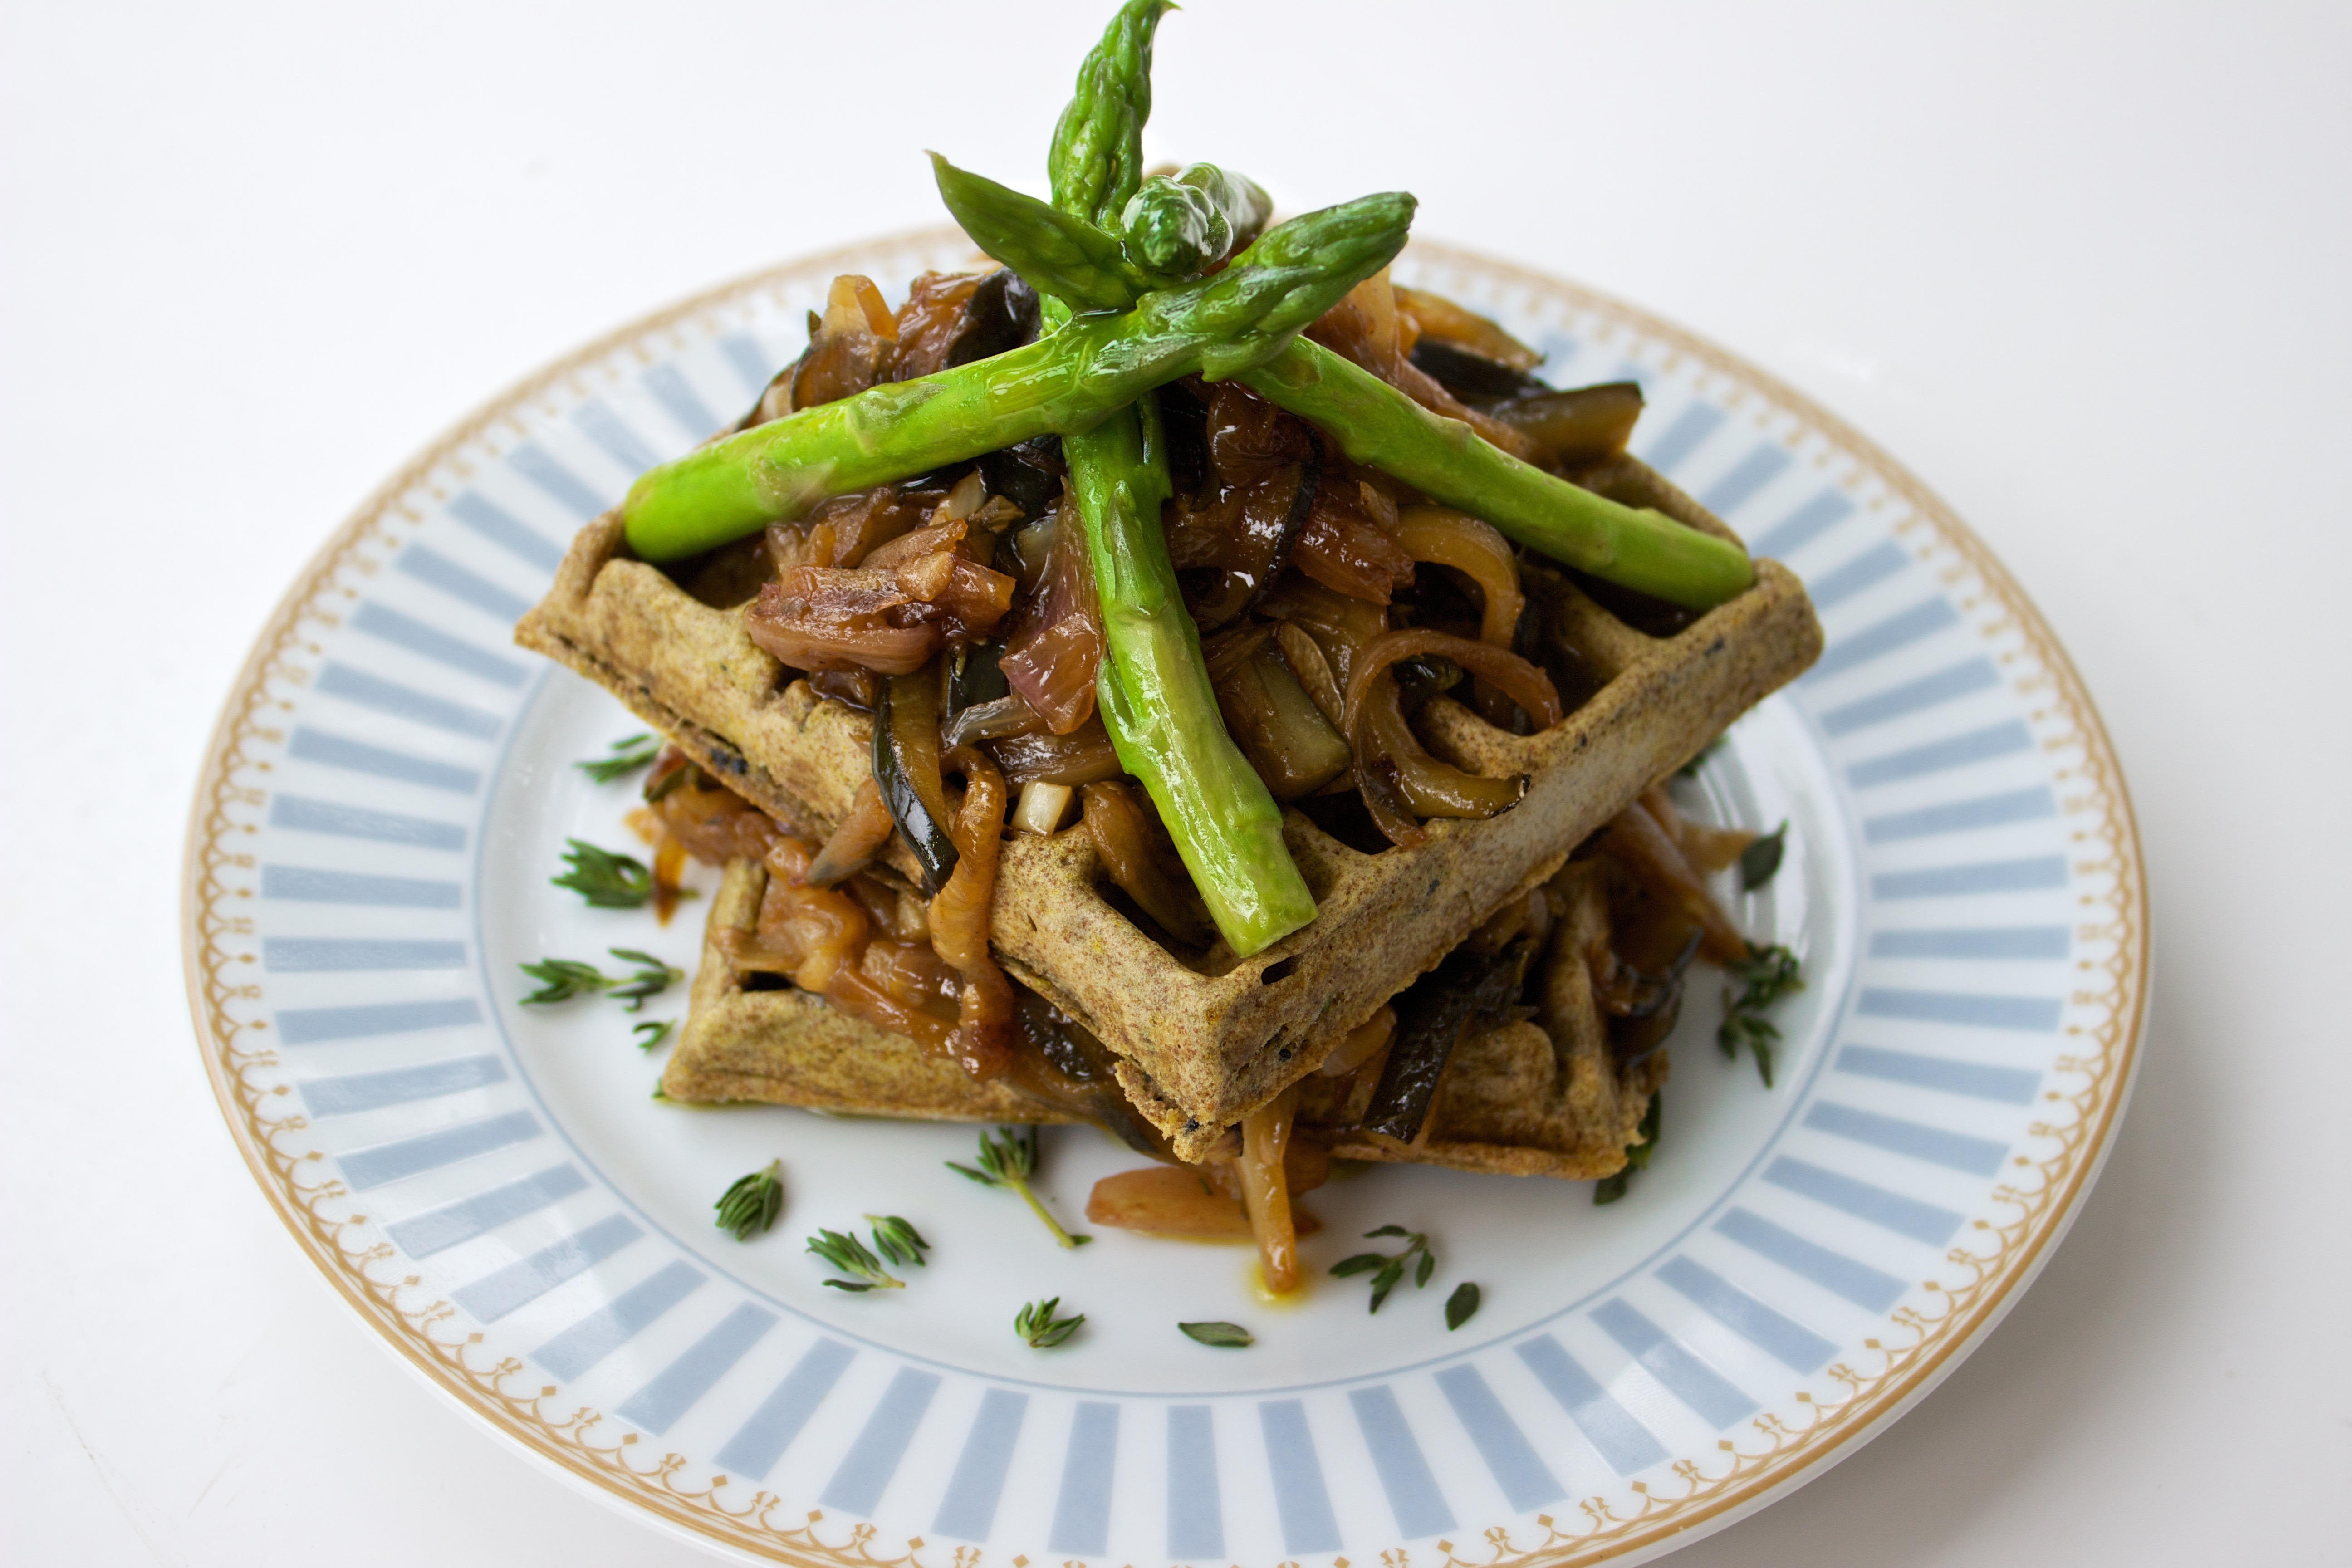 savoury waffles with asparagus on a blue plate and white background